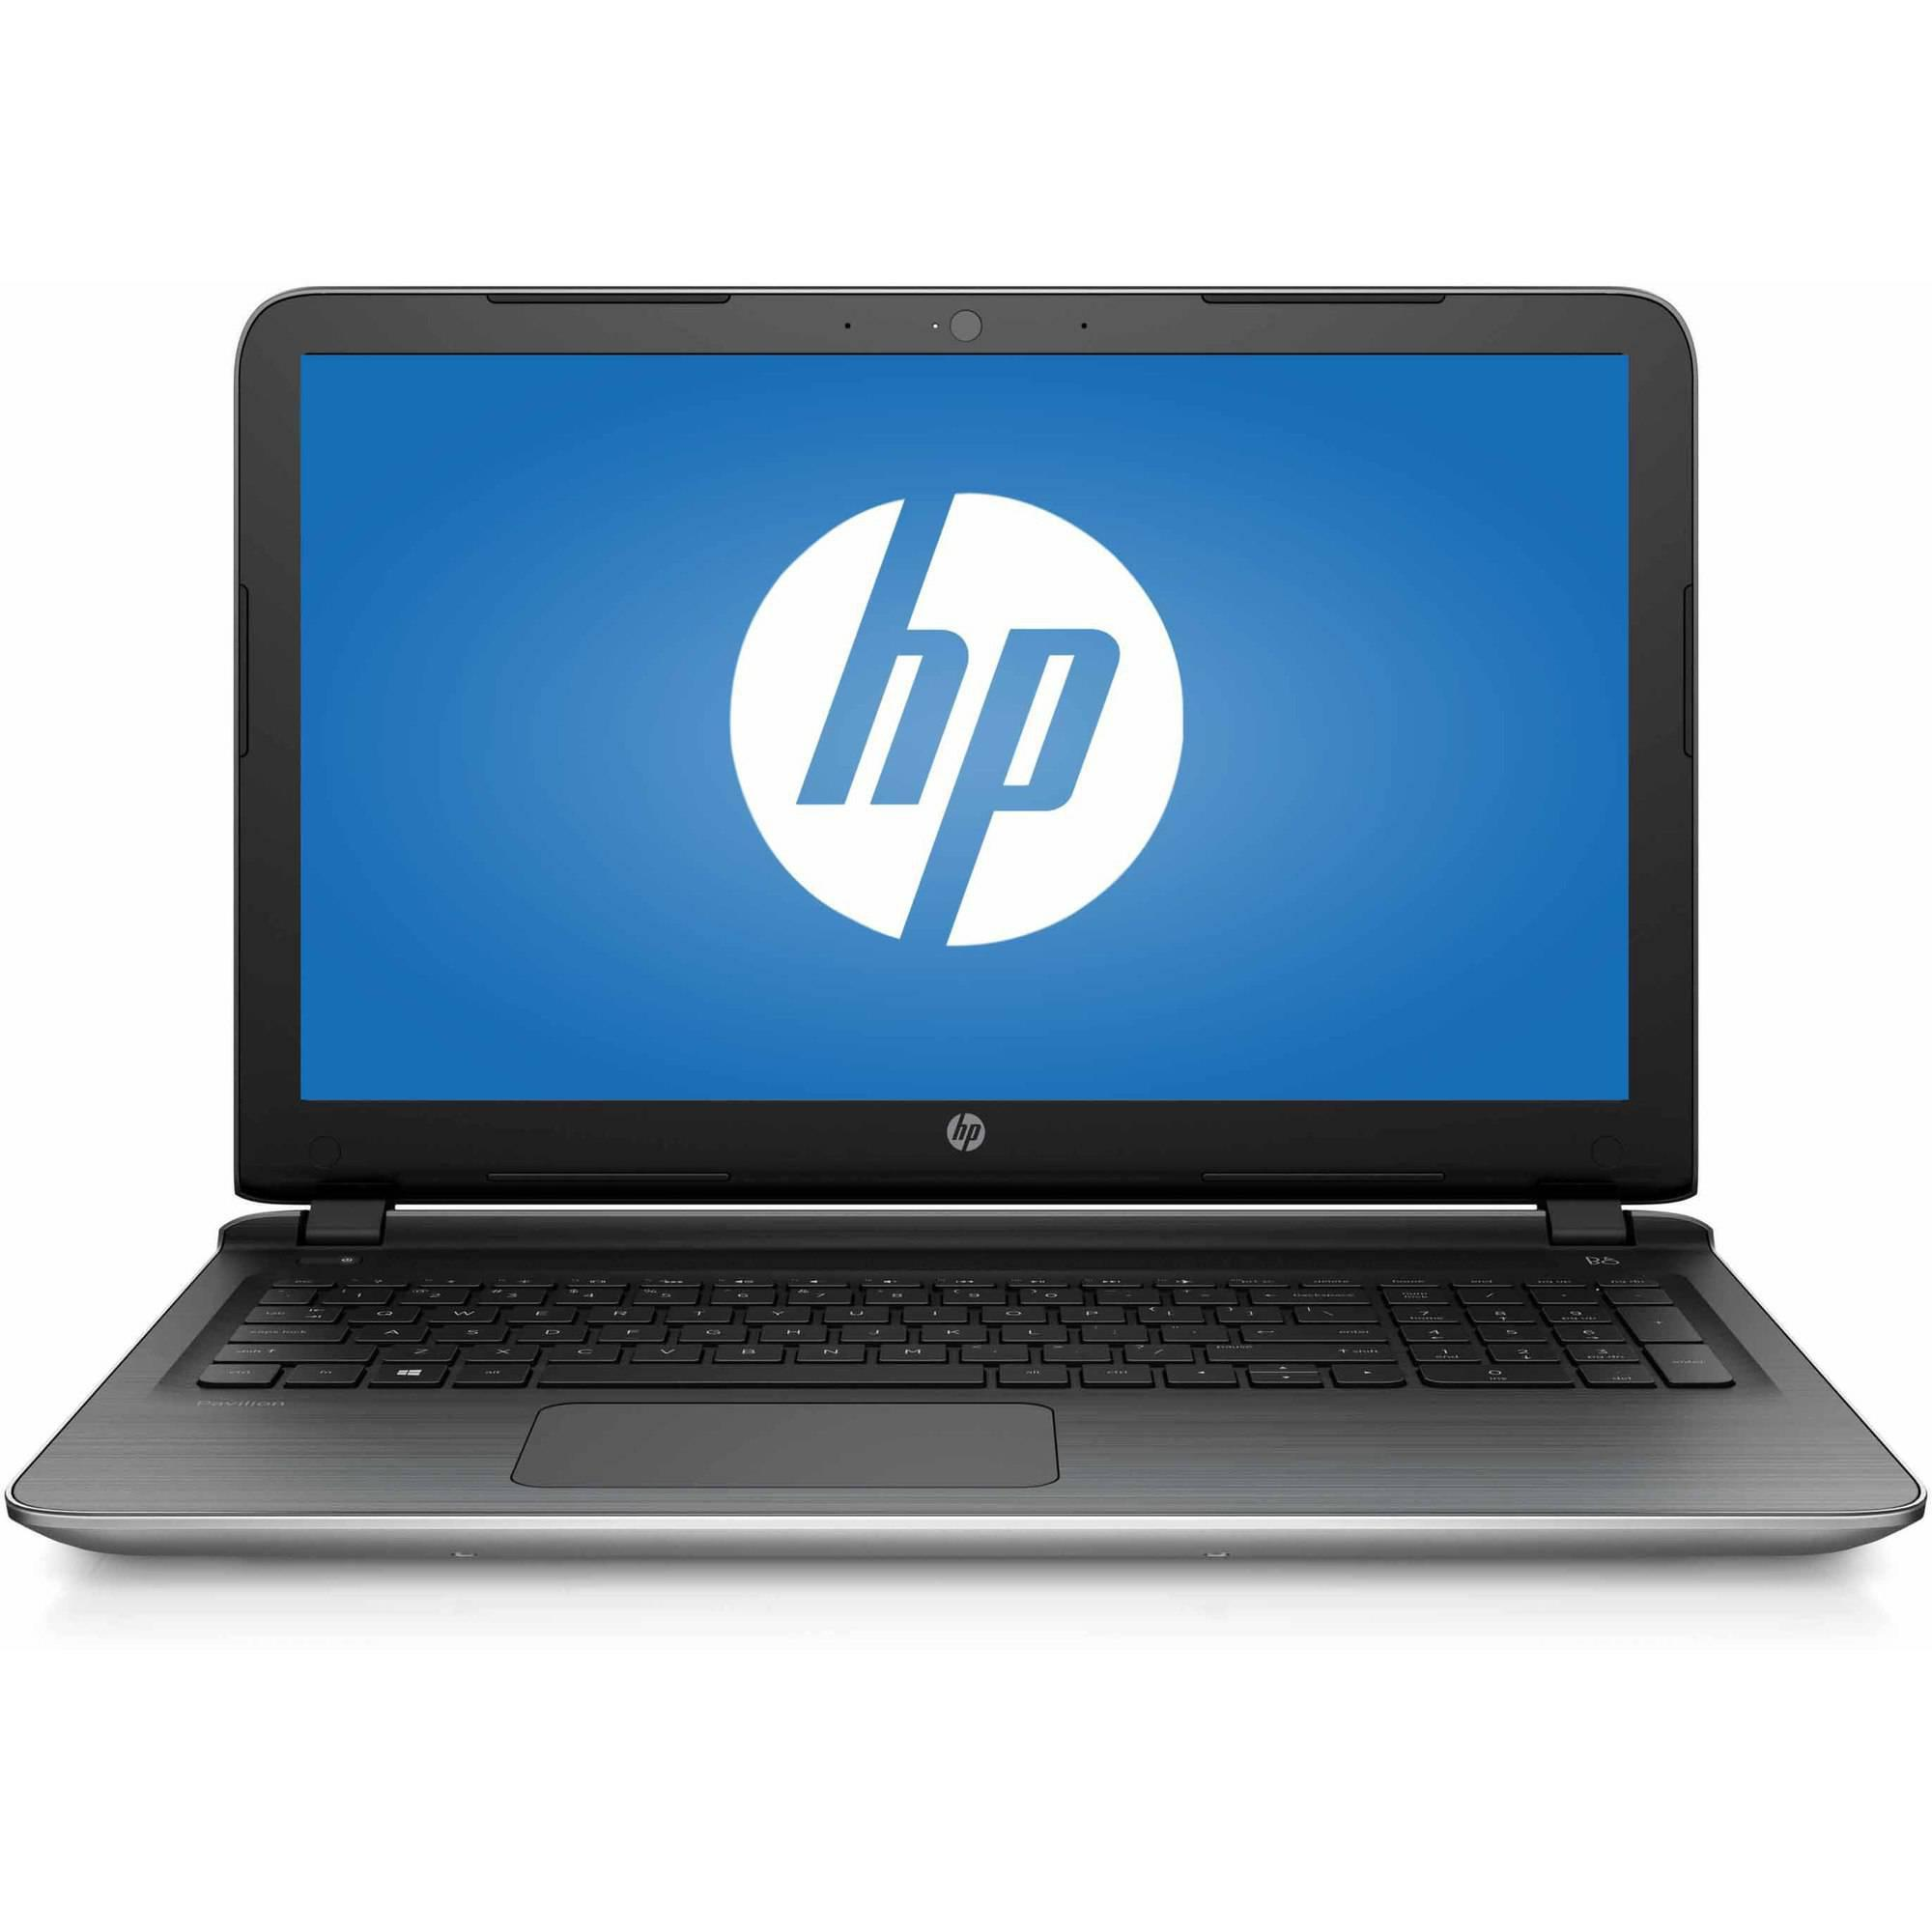 hp pavilion 17 g121wm 17 3 laptop amd a10 8700p 8gb 1tb windows 10 ebay. Black Bedroom Furniture Sets. Home Design Ideas